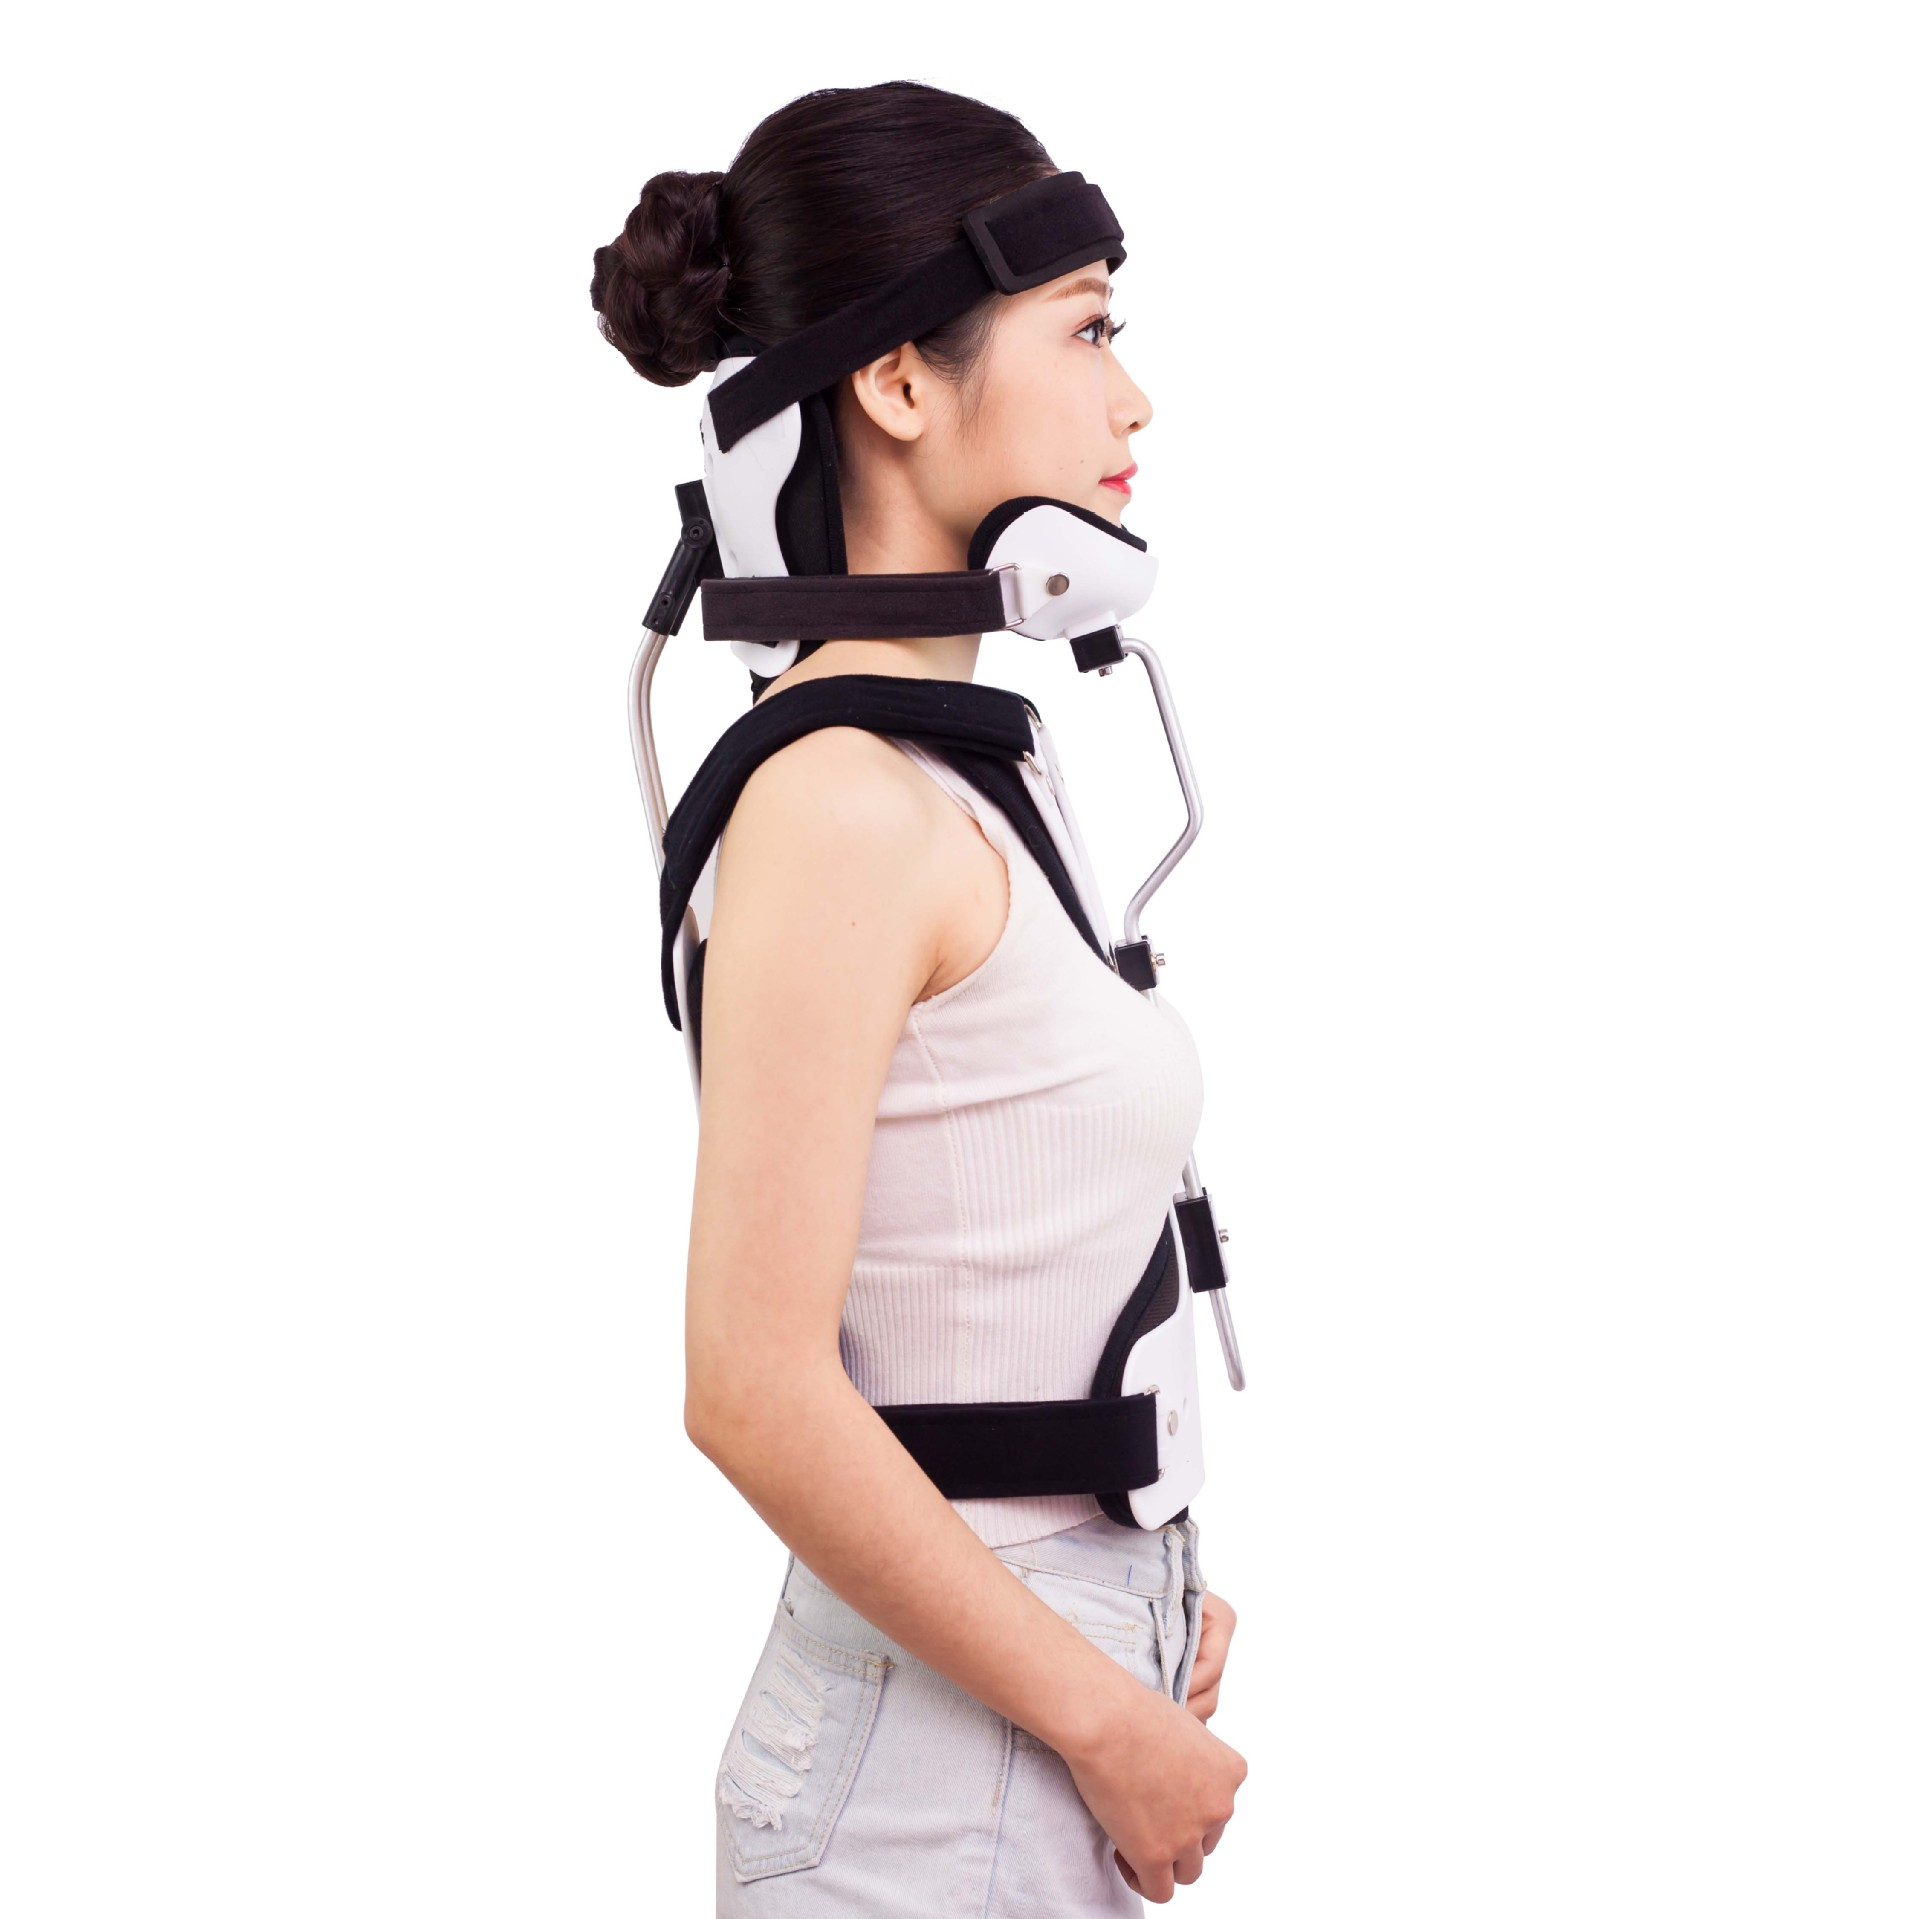 Medical orthosis Adult Head Neck Orthosis Surgery Thoracic Stent Fracture Fixation Rehabilitation Brace Cervical Traction(China)